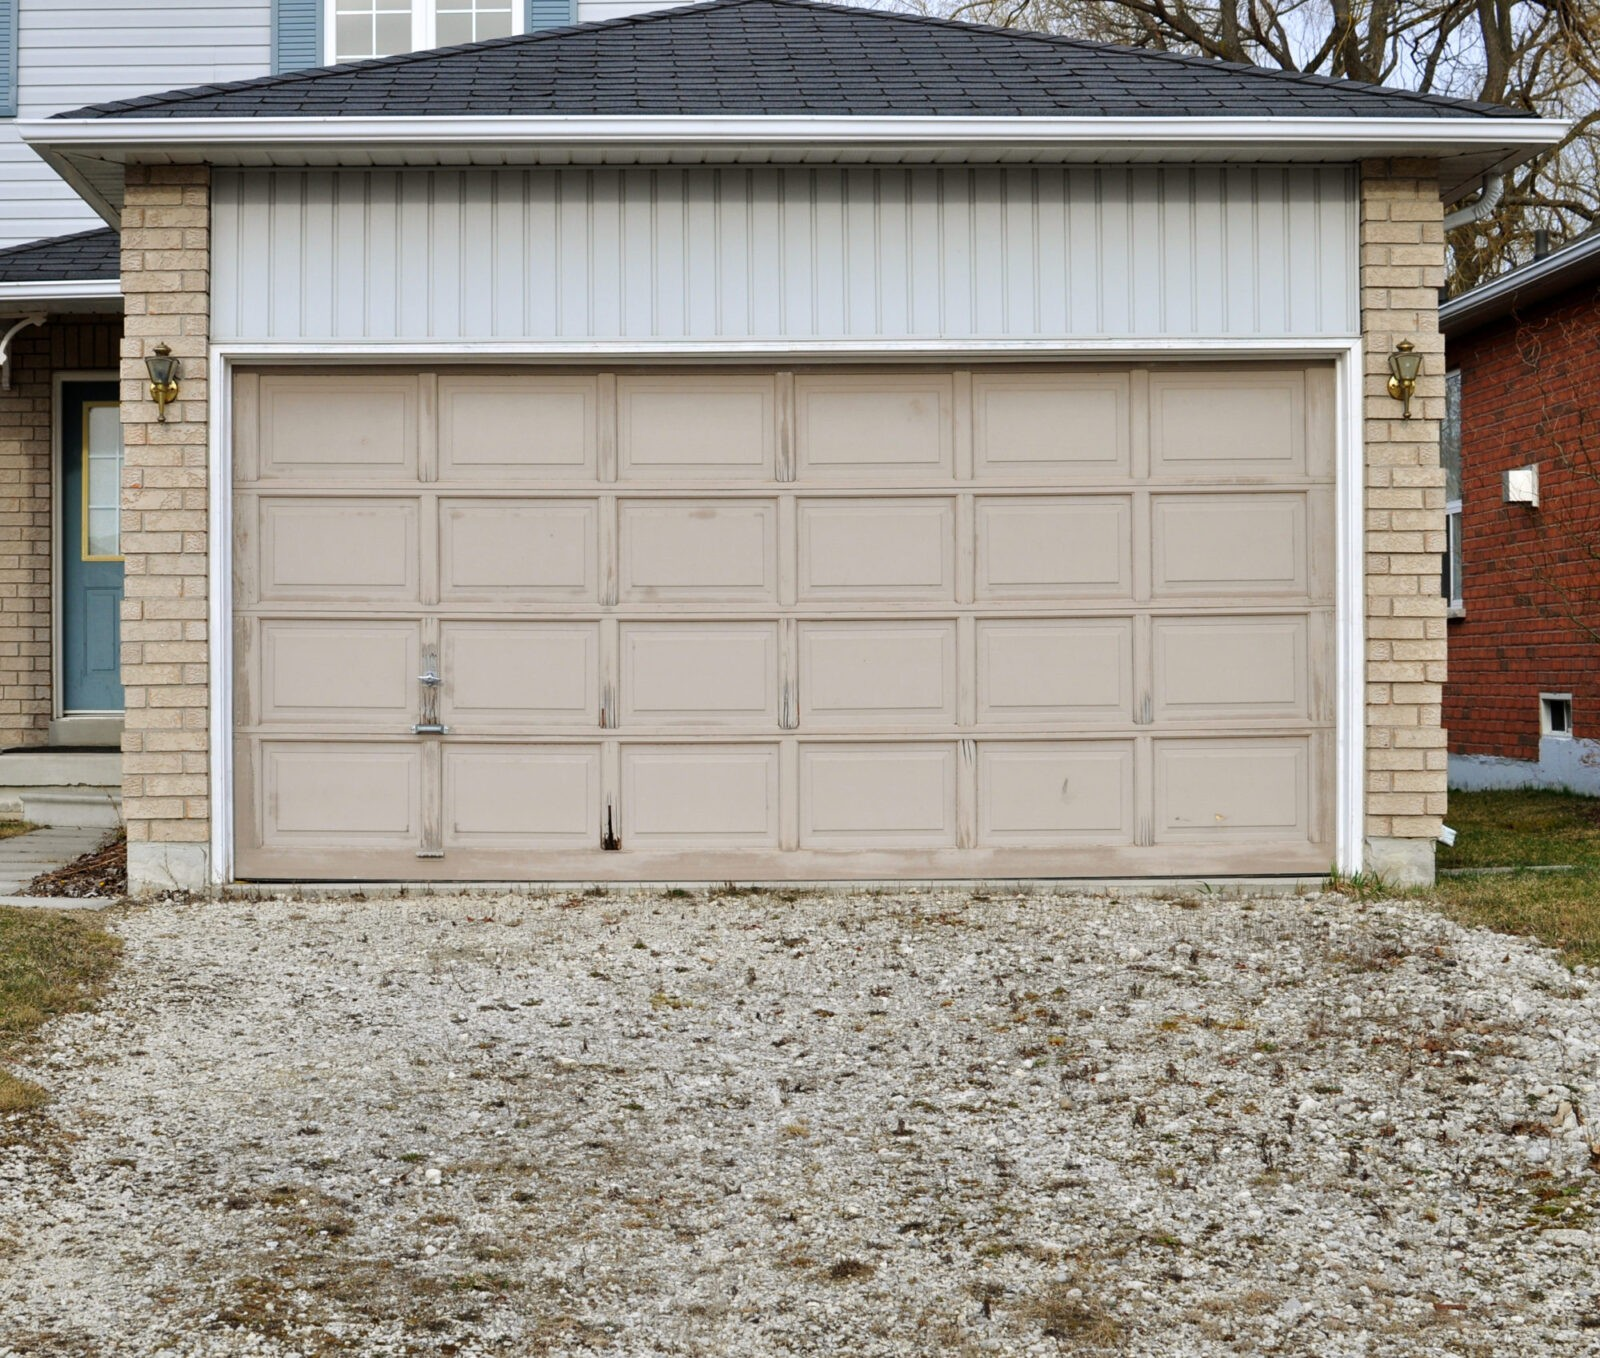 The Dangers Of An Old Garage Door